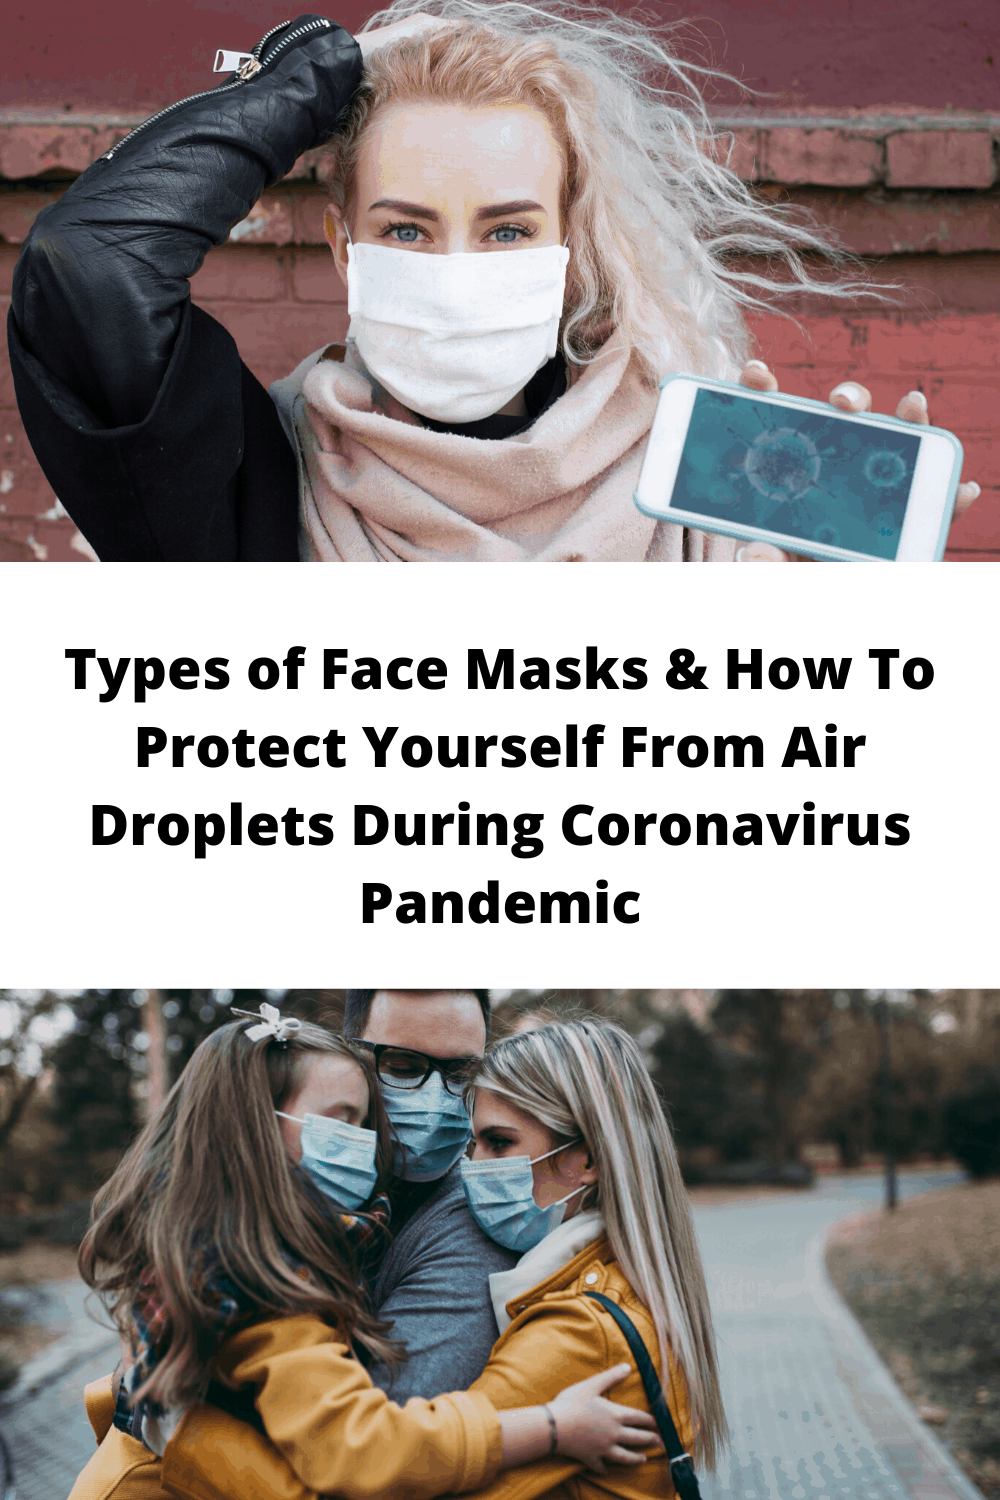 Types of Face Masks & How To Protect Yourself From Air Droplets During Coronavirus Pandemic